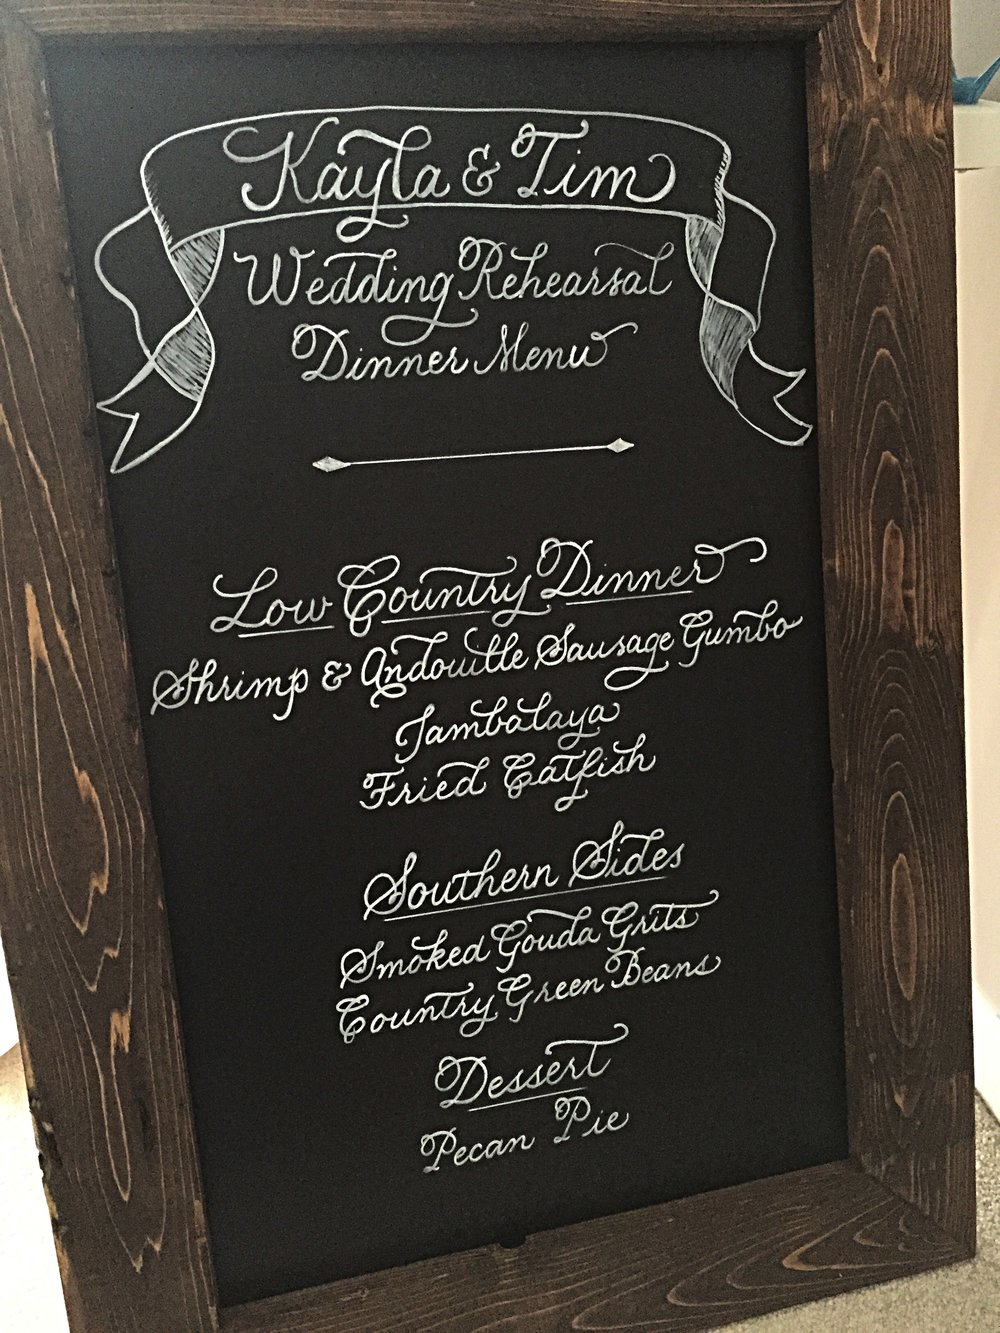 Chalkboard menu for a vintage wedding